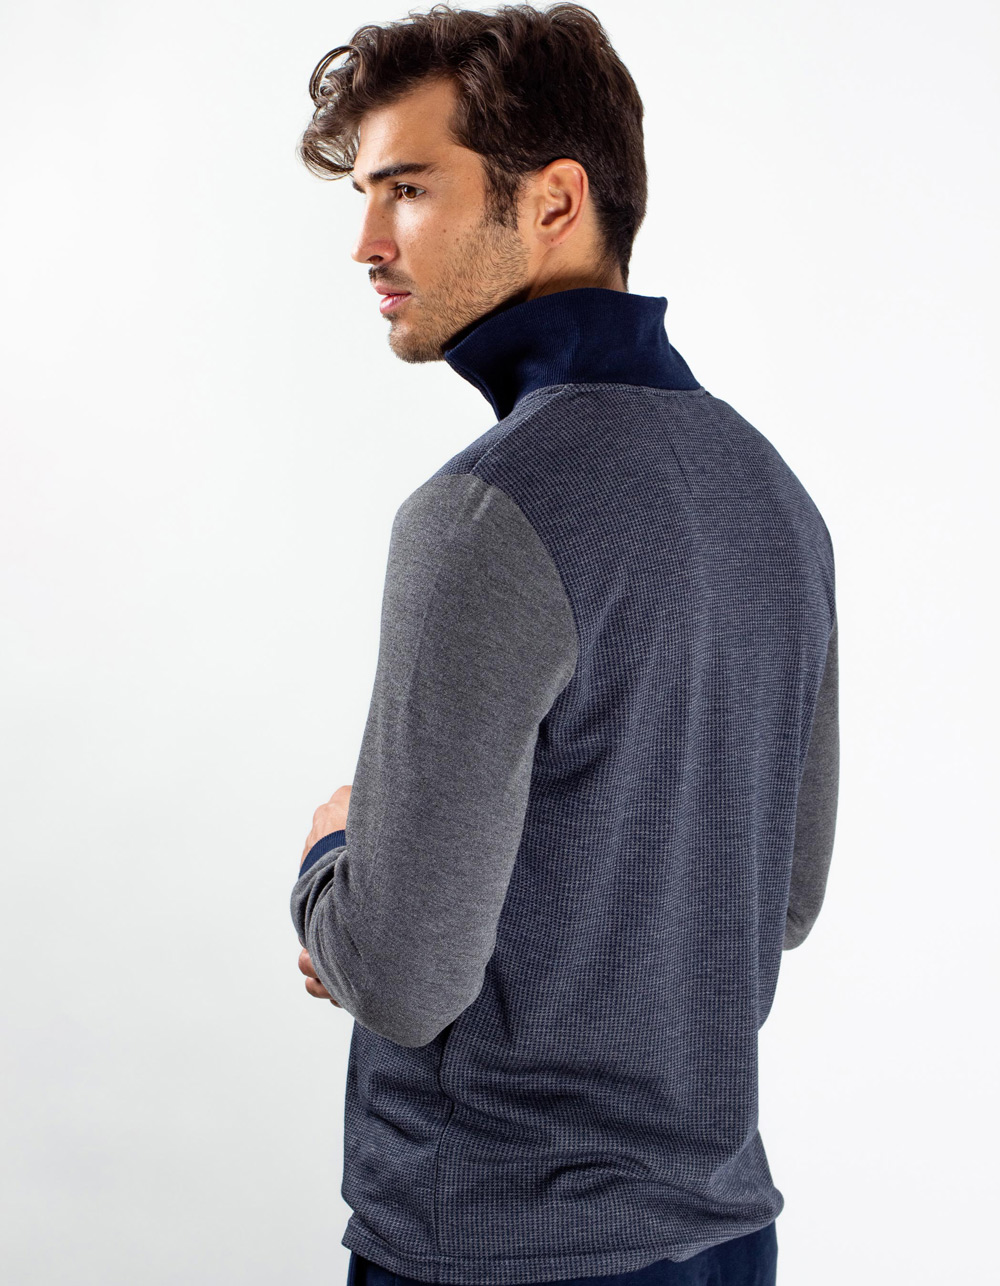 Blue neck sweater with zip - Backside